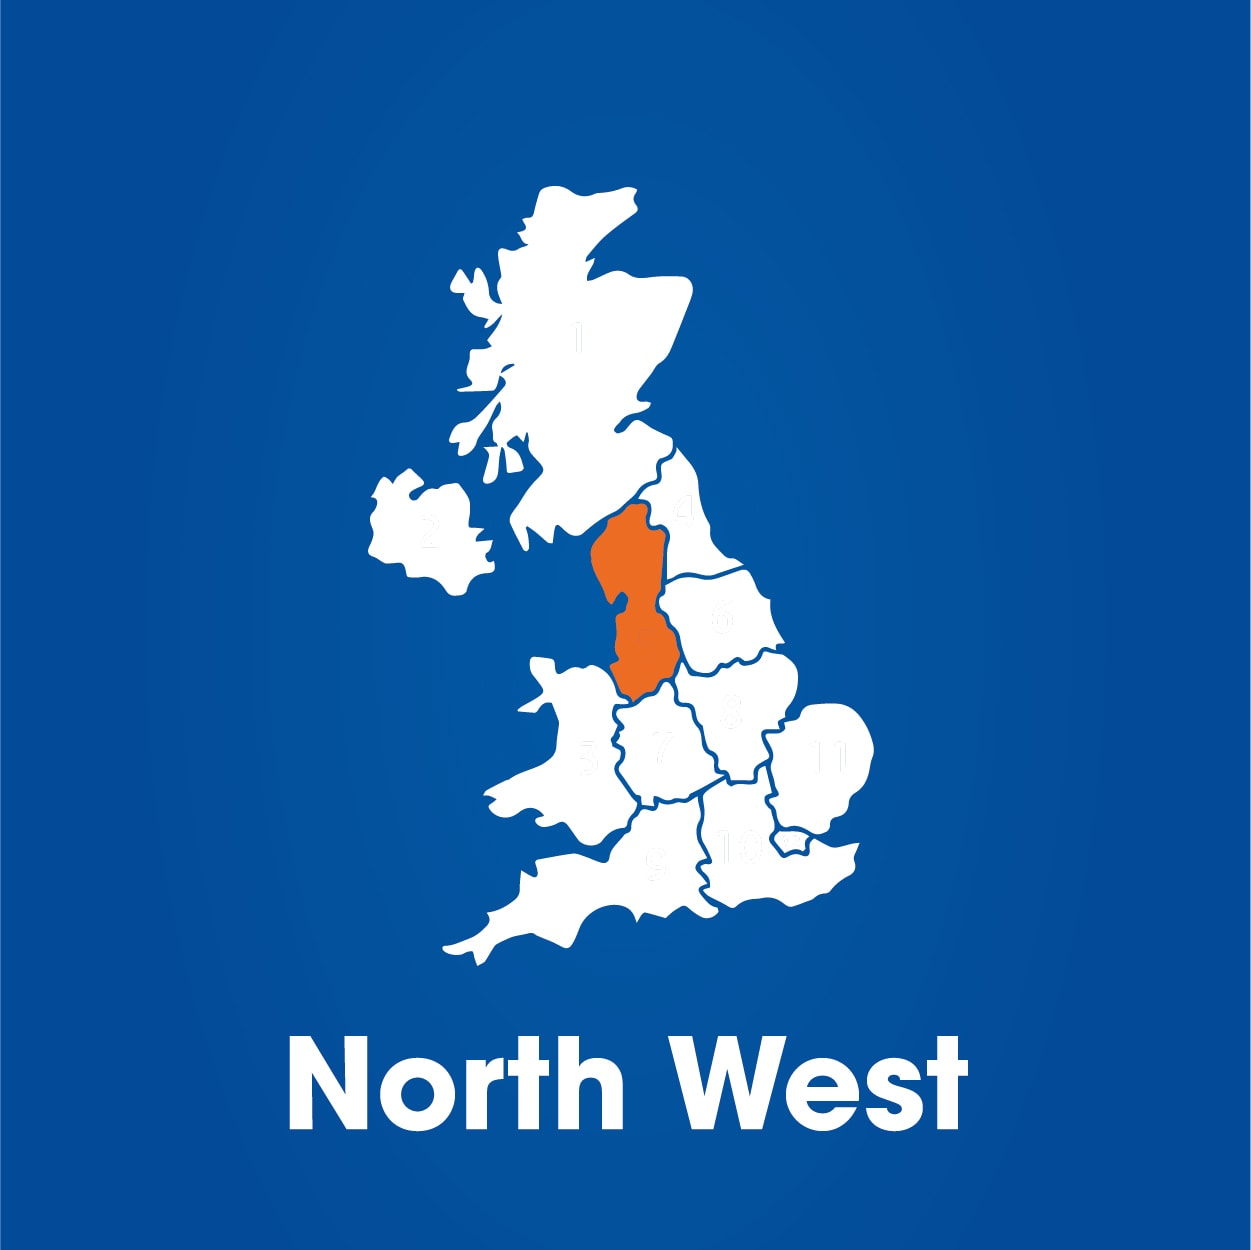 north west region highlighted on map of UK